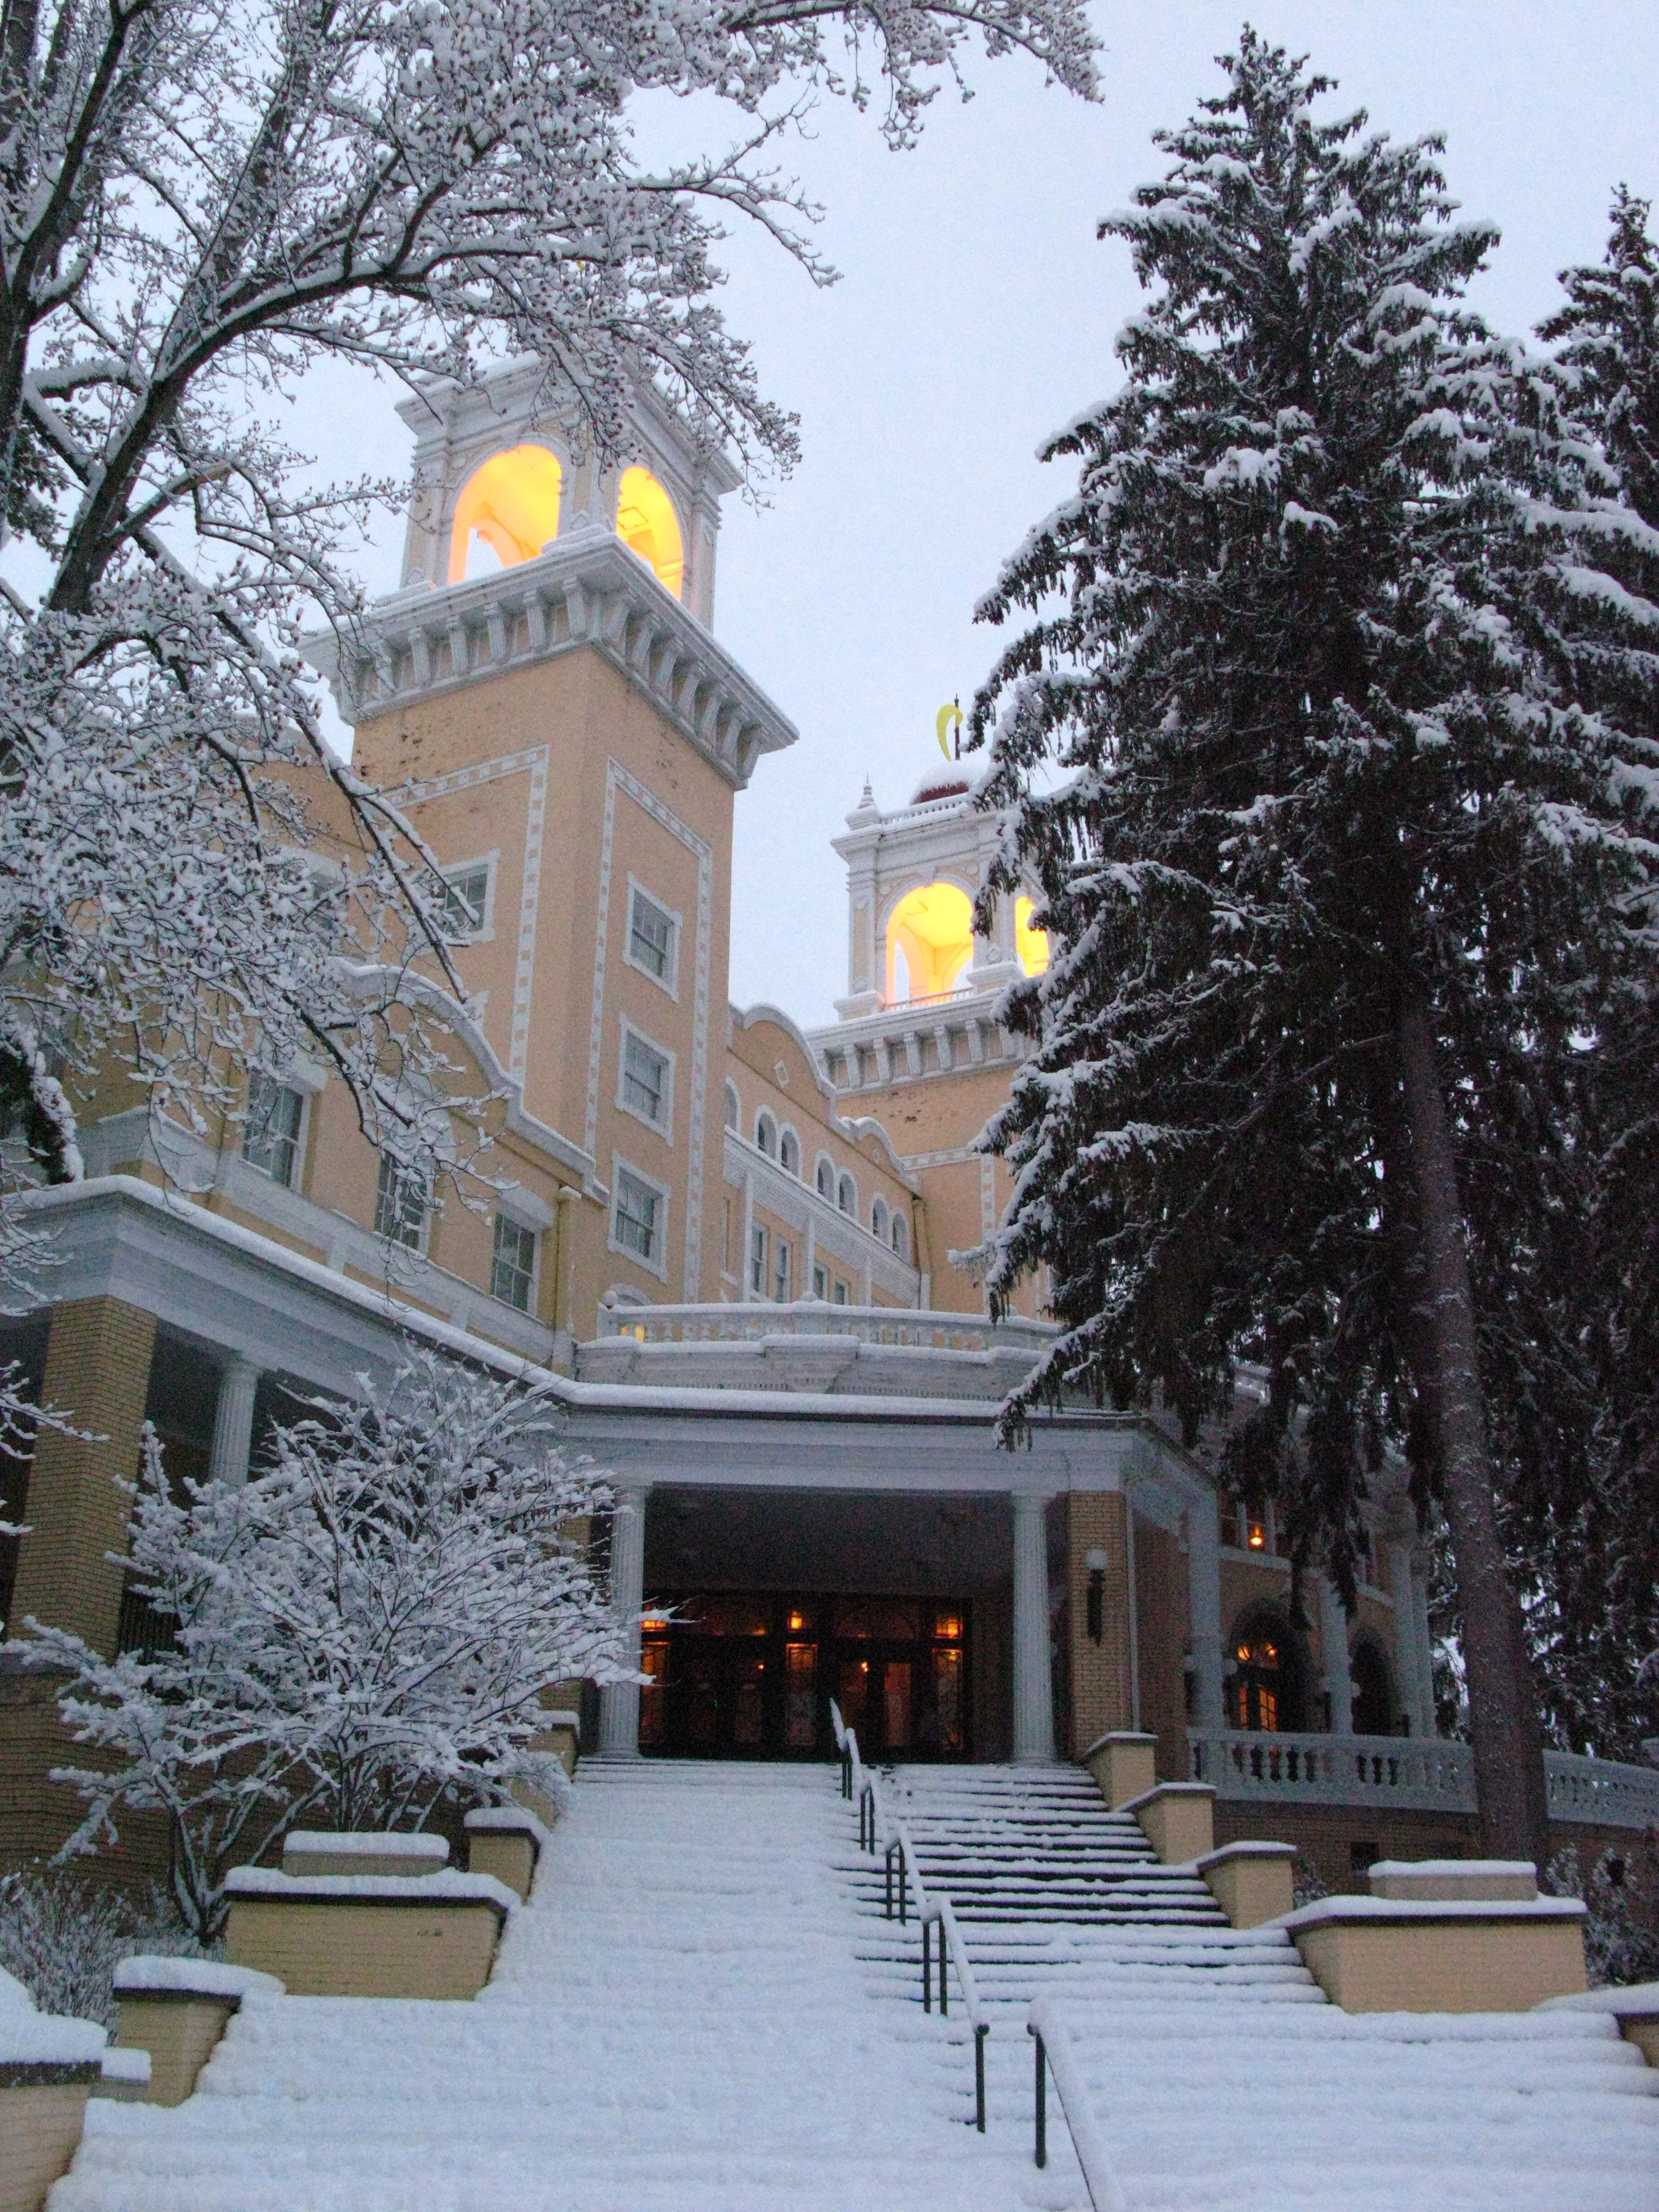 The majestic West Baden Springs Hotel in